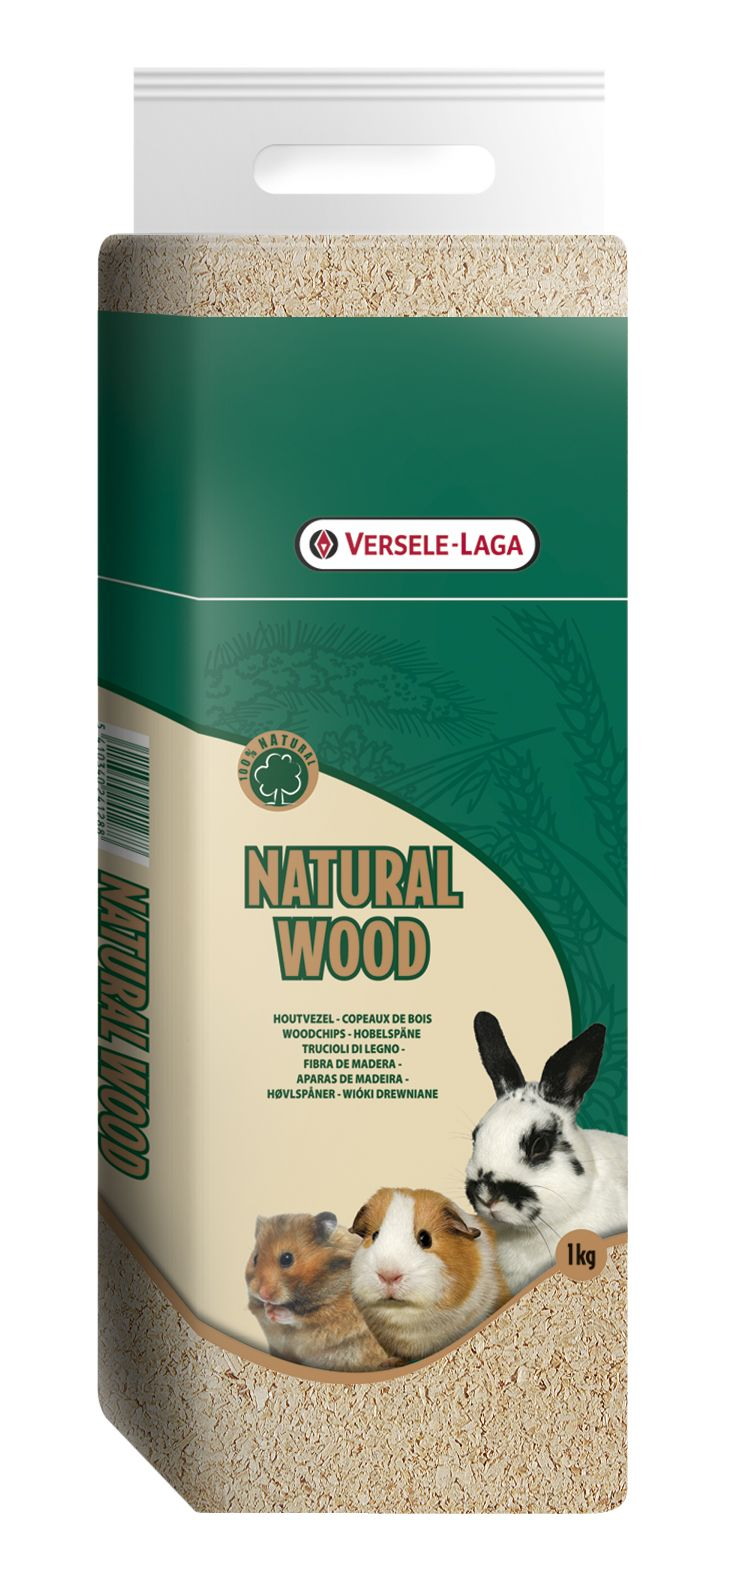 Prespack 1kg viruta (natural wood)